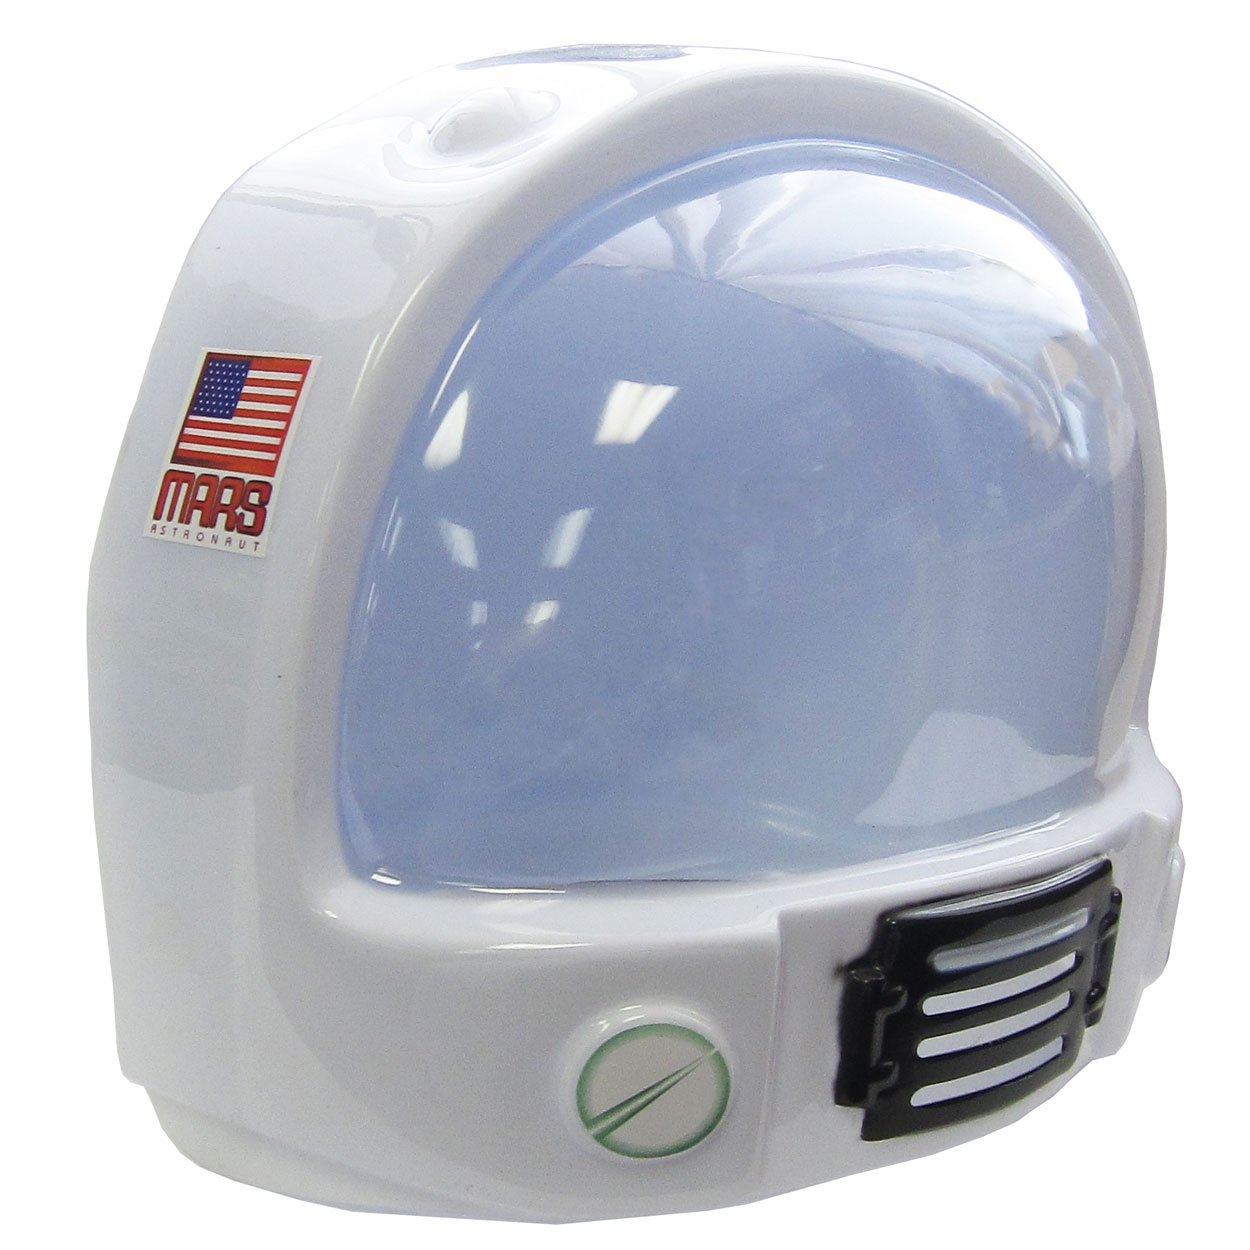 Jacobson Hat Company Adult Toy Space Helmet NASA Astronaut Hat Mask Plastic Costume Accessory,White,One Size